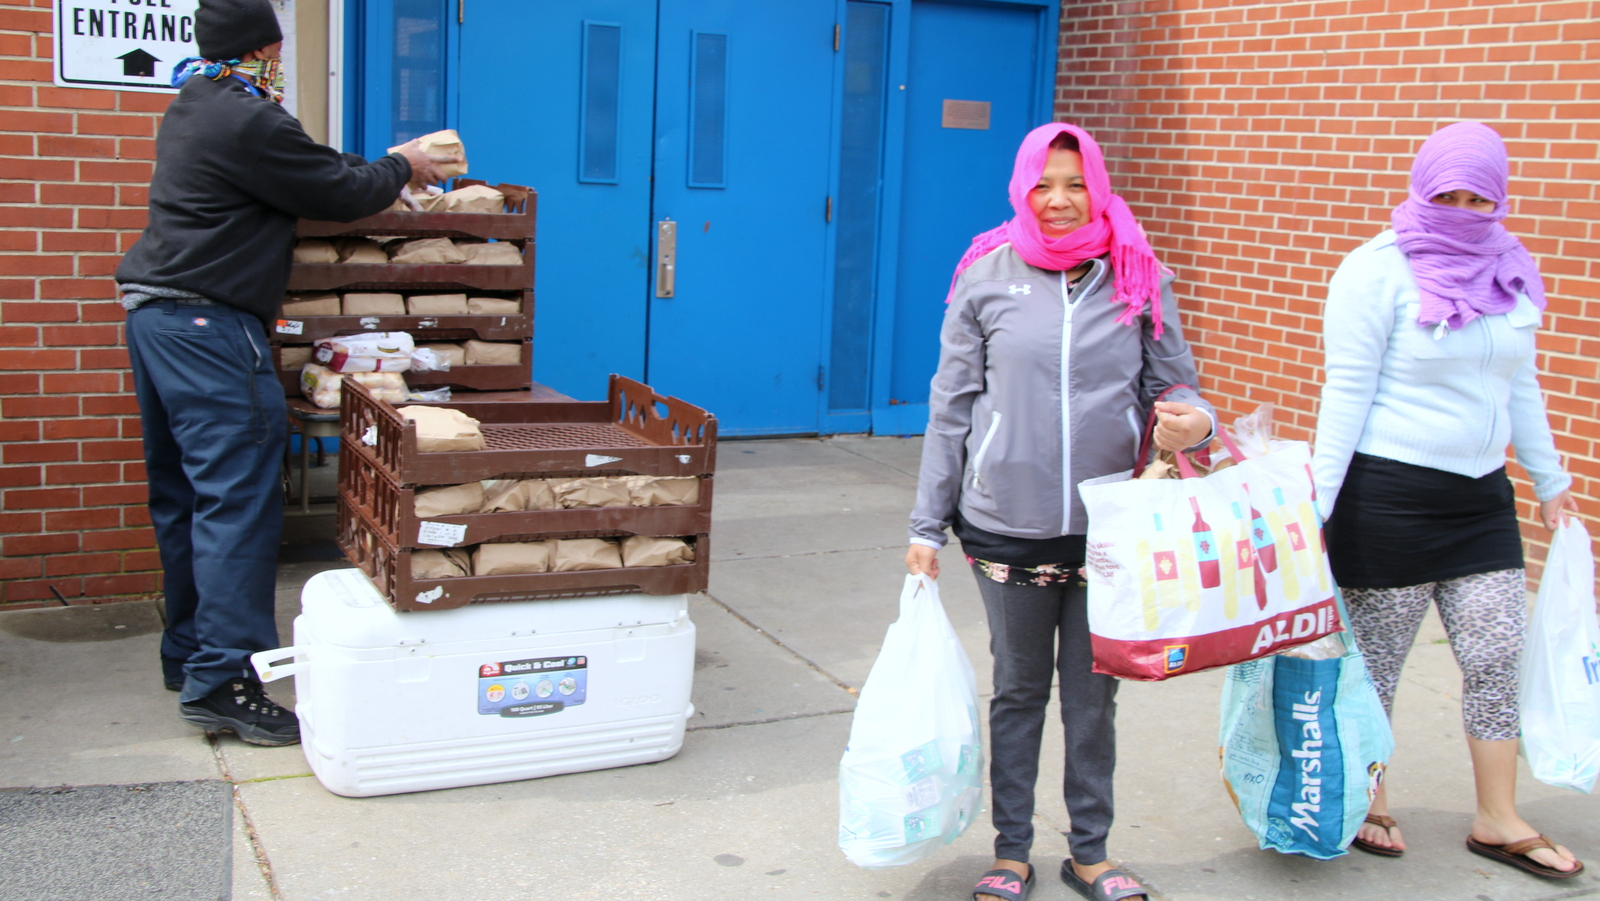 Doris George (left) and Jeraldin Garcia (right) pick up food at Liberty Rec and Tech Center in Northwest Baltimore. (Louis Krauss)